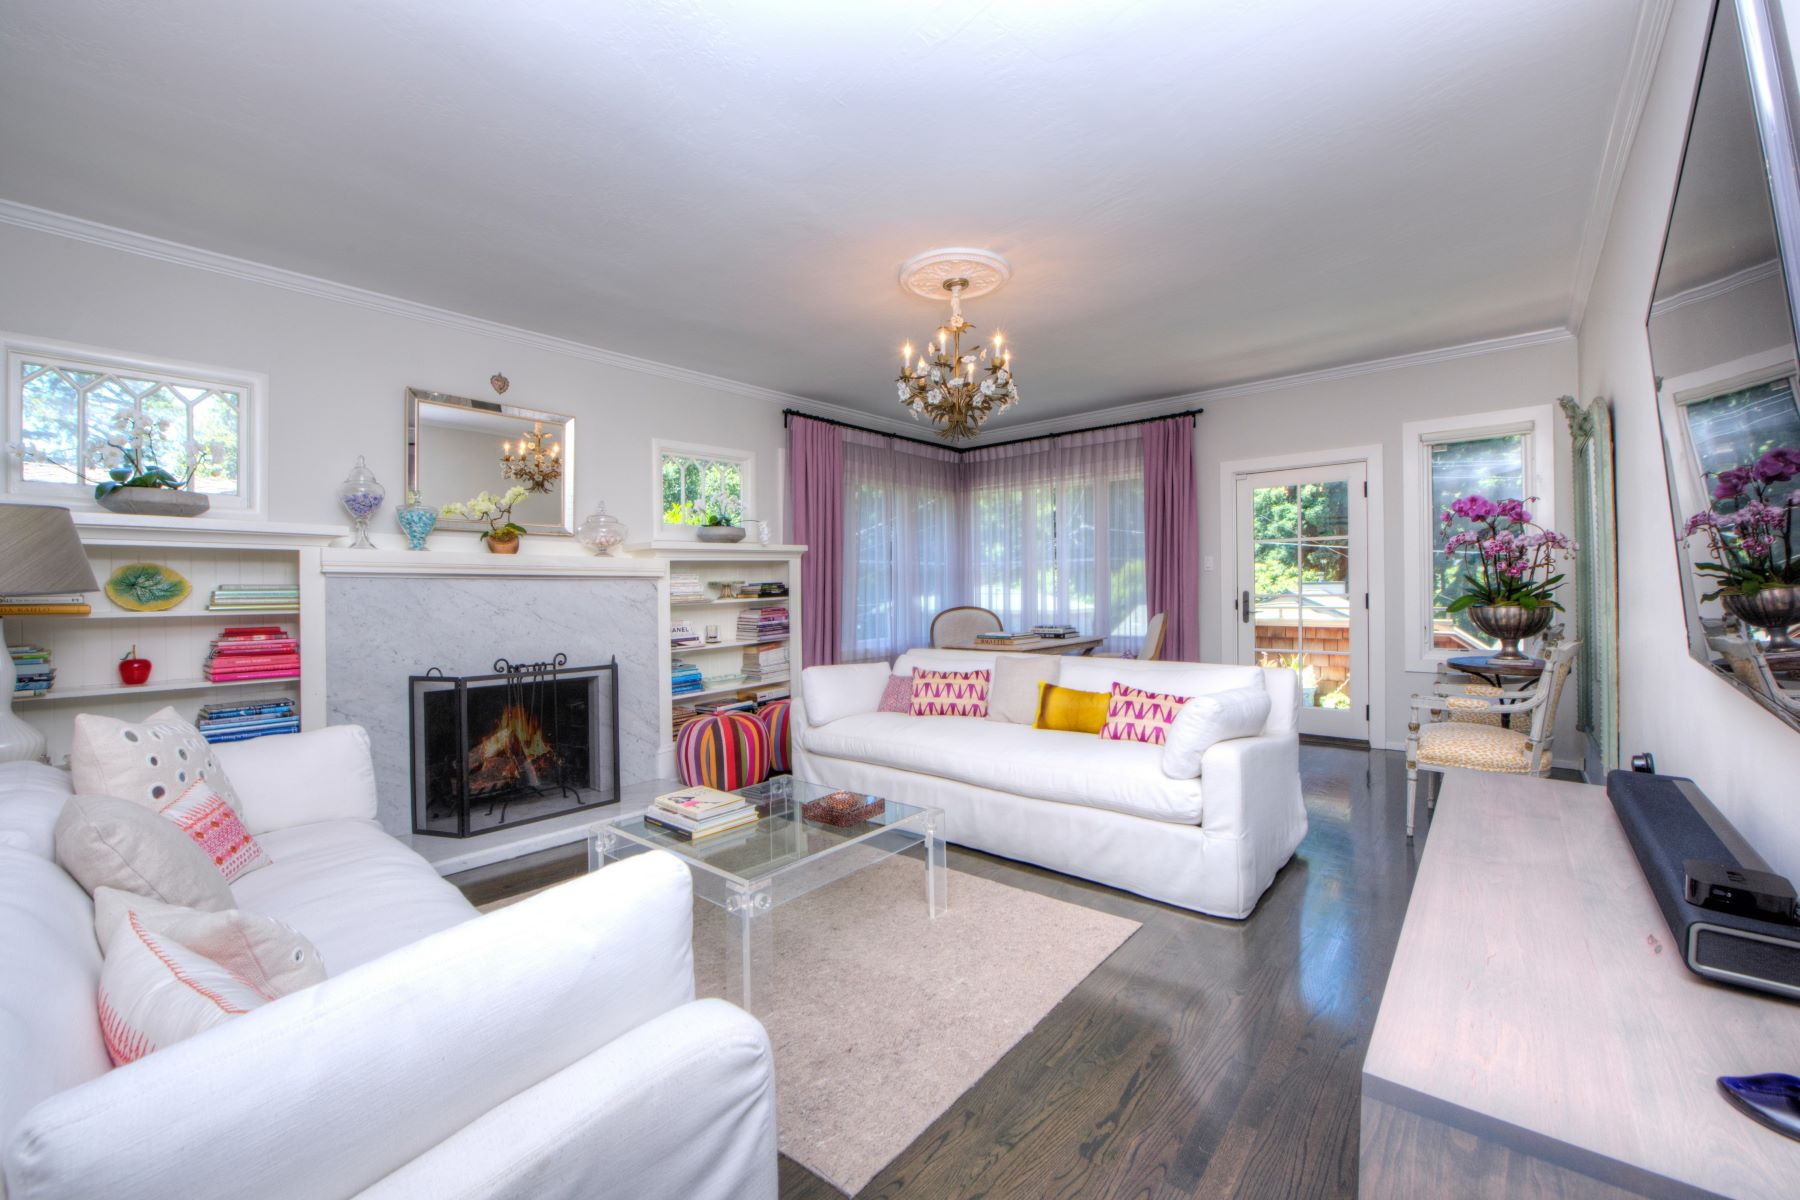 Single Family Home for Sale at Quintessential Mill Valley Charm 16 Parkwood Avenue Mill Valley, California 94941 United States